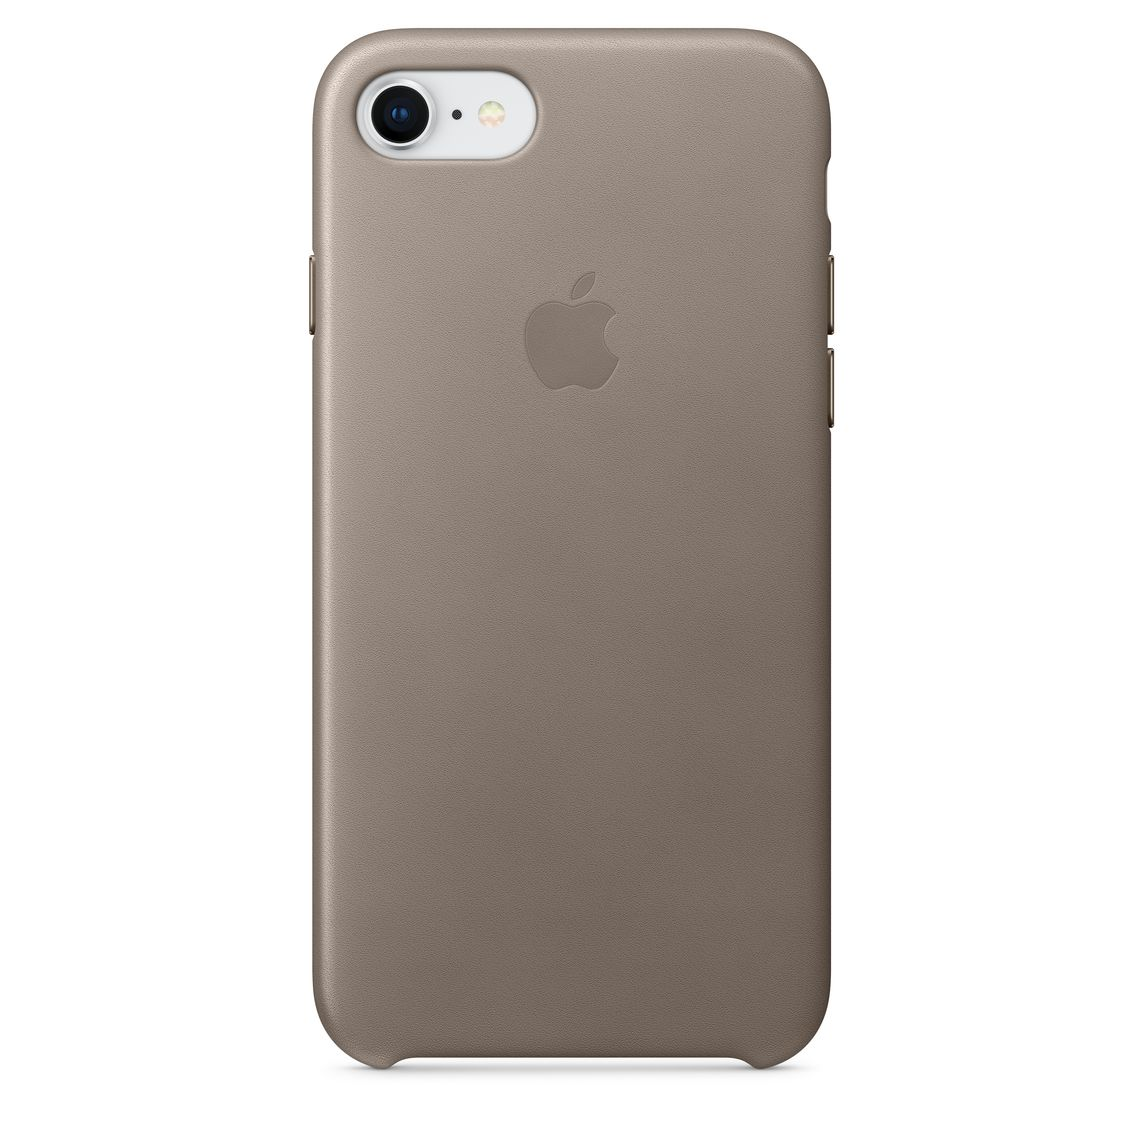 sale retailer e9d54 c8e4d iPhone 8 / 7 Leather Case - Taupe